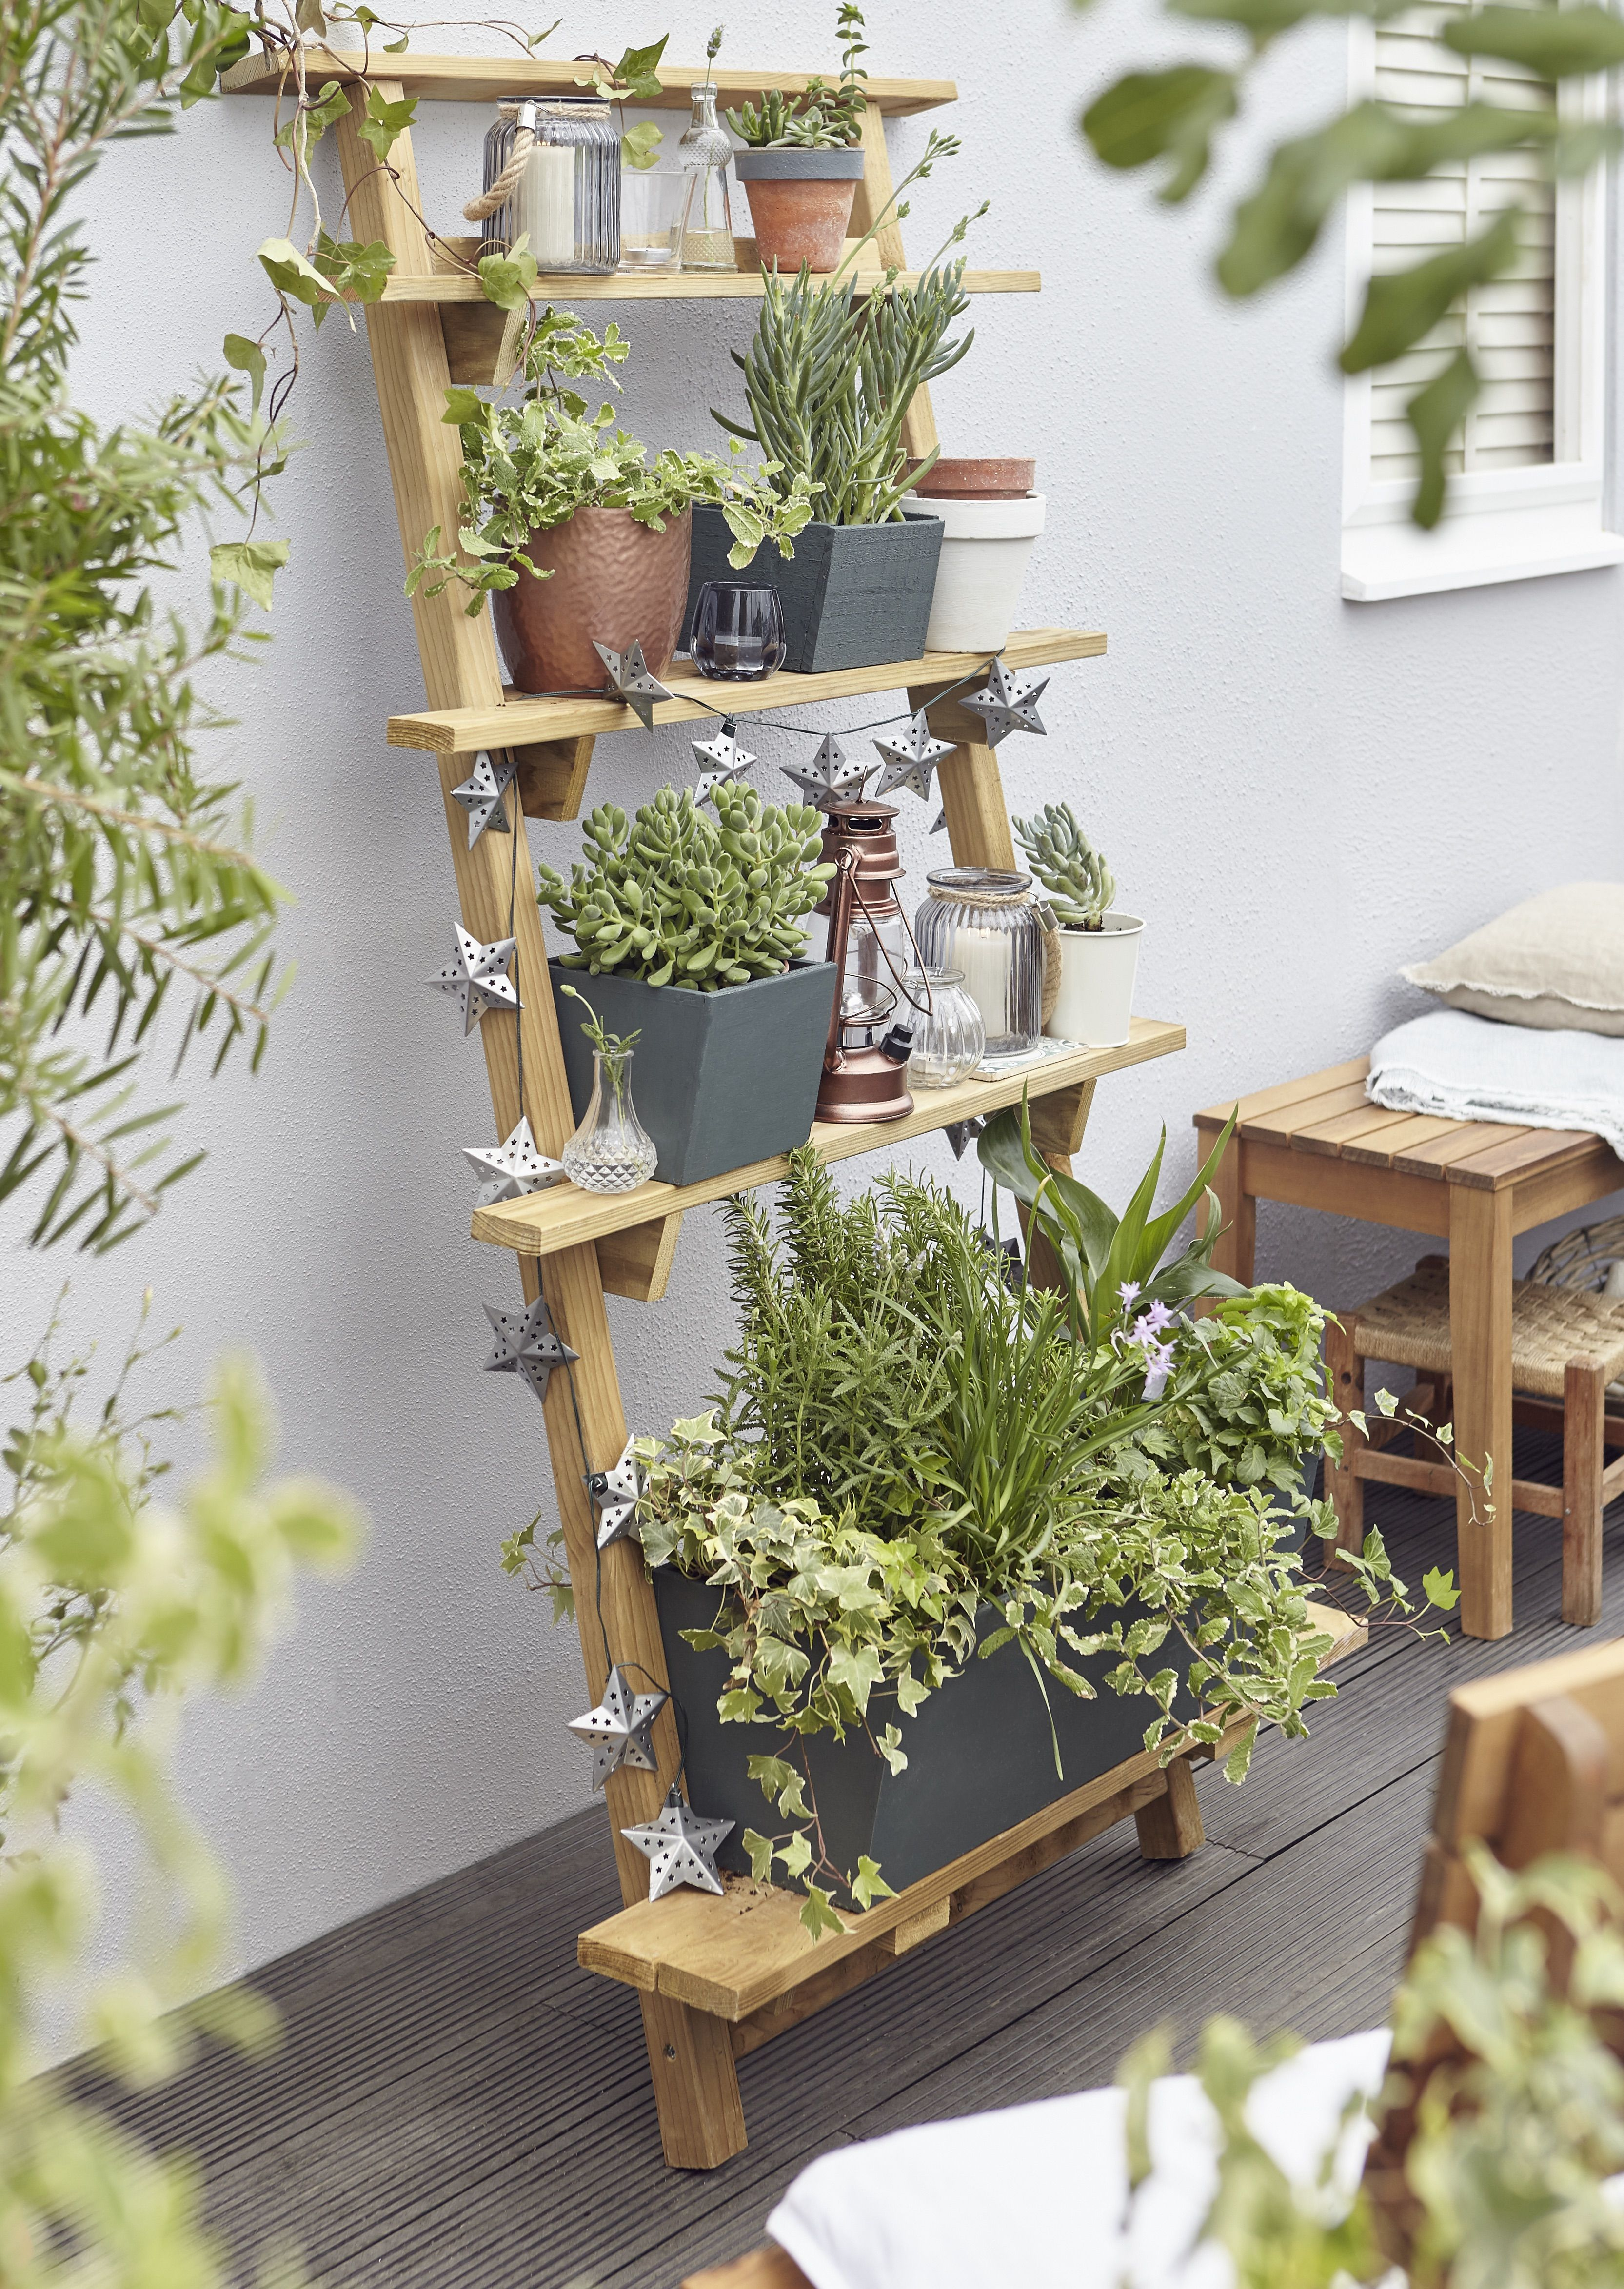 Create And Display With Your Pots By Using Steps Or A